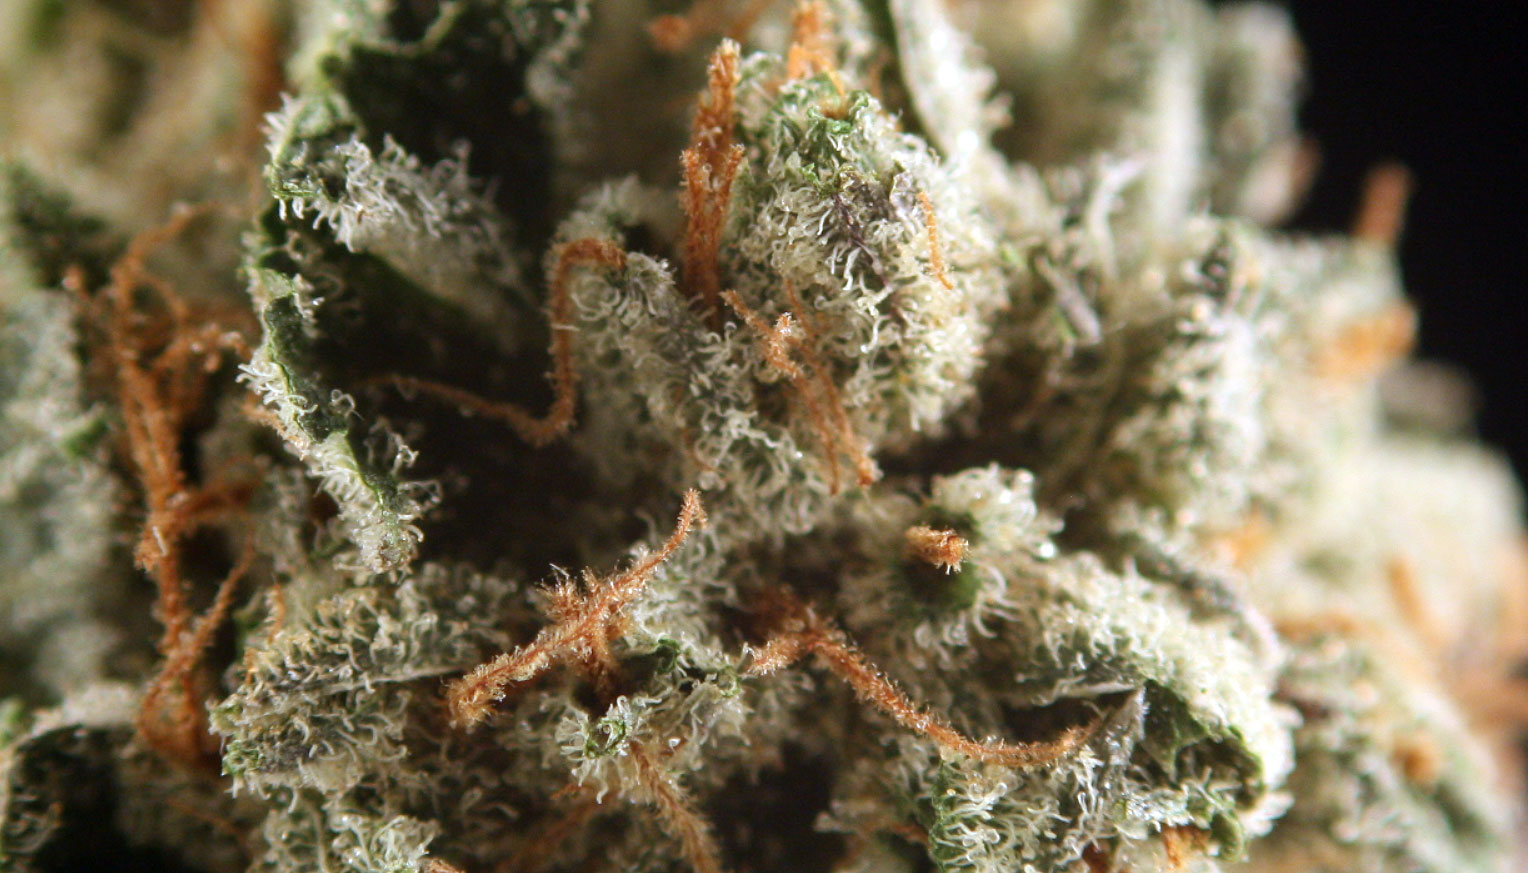 Trichomes weed